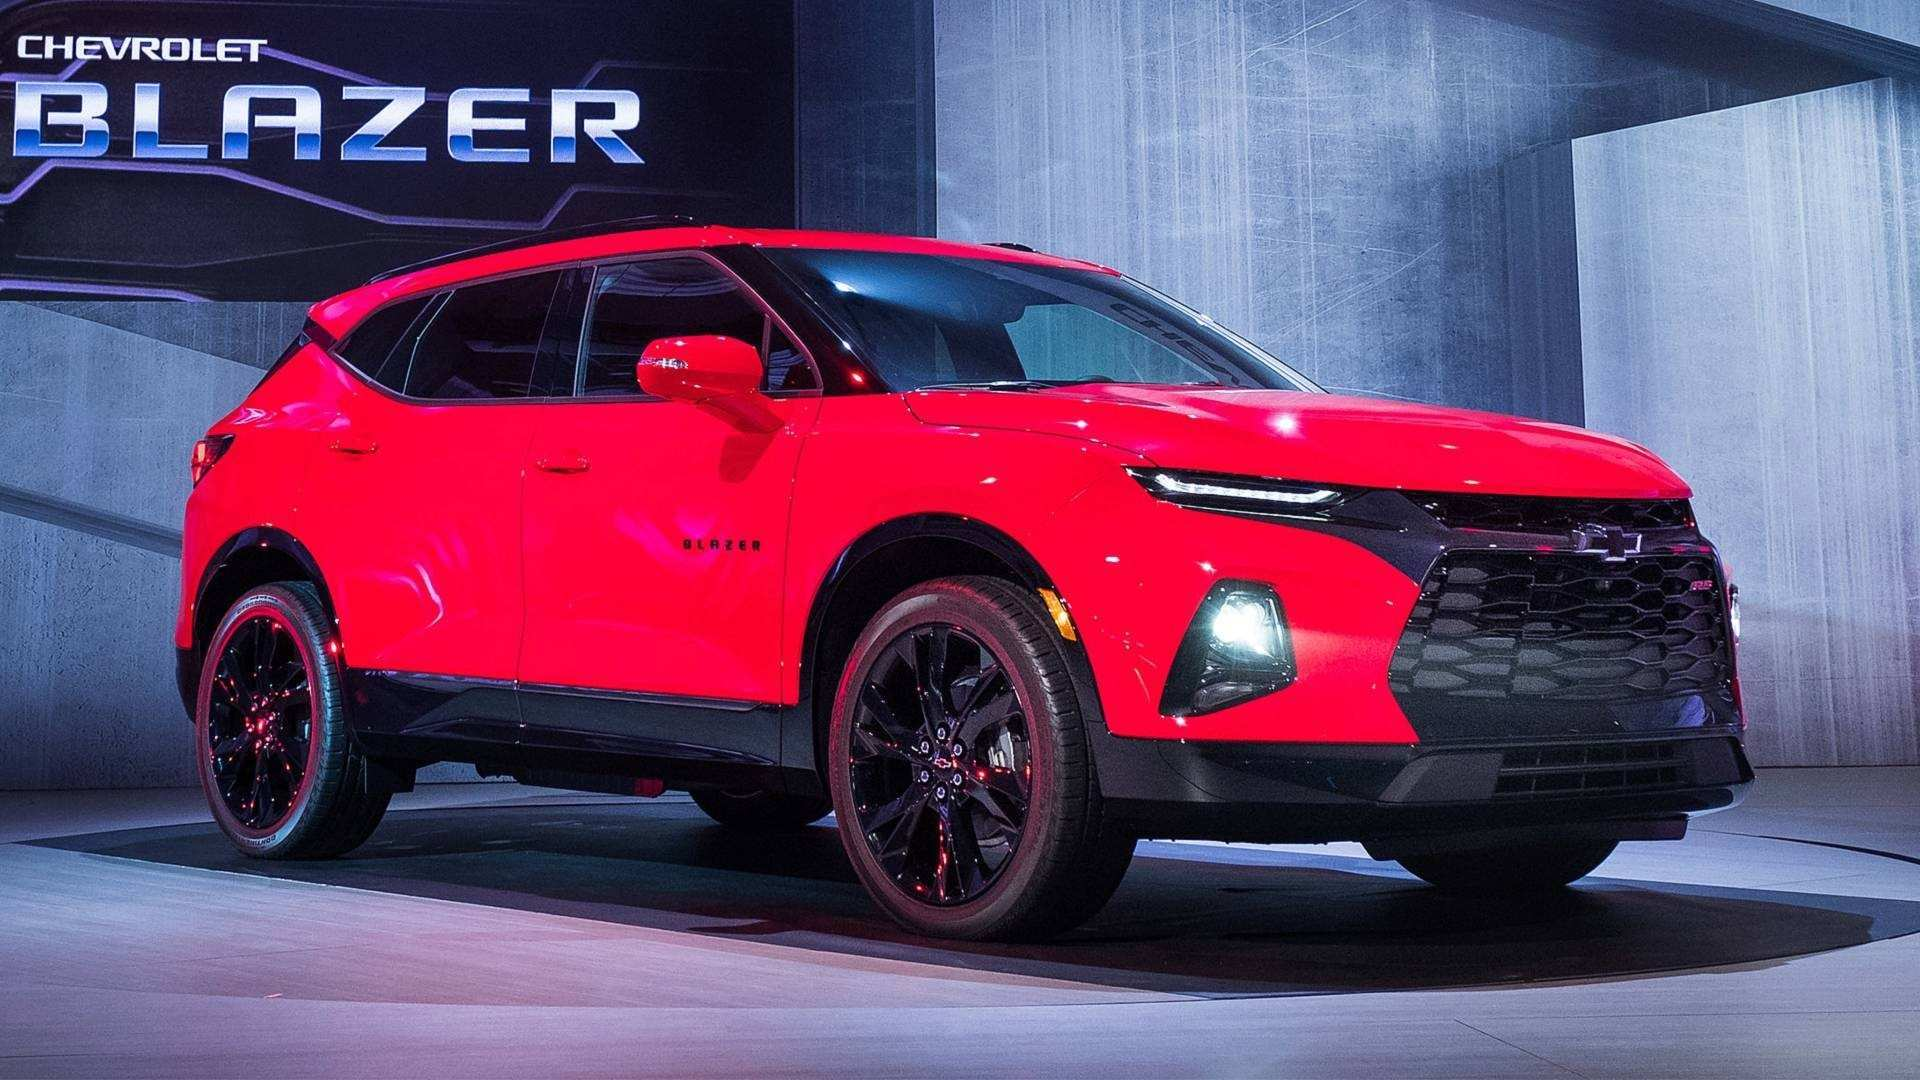 65 Gallery of New Chevrolet New Models 2019 Release Date Price And Review Style with New Chevrolet New Models 2019 Release Date Price And Review